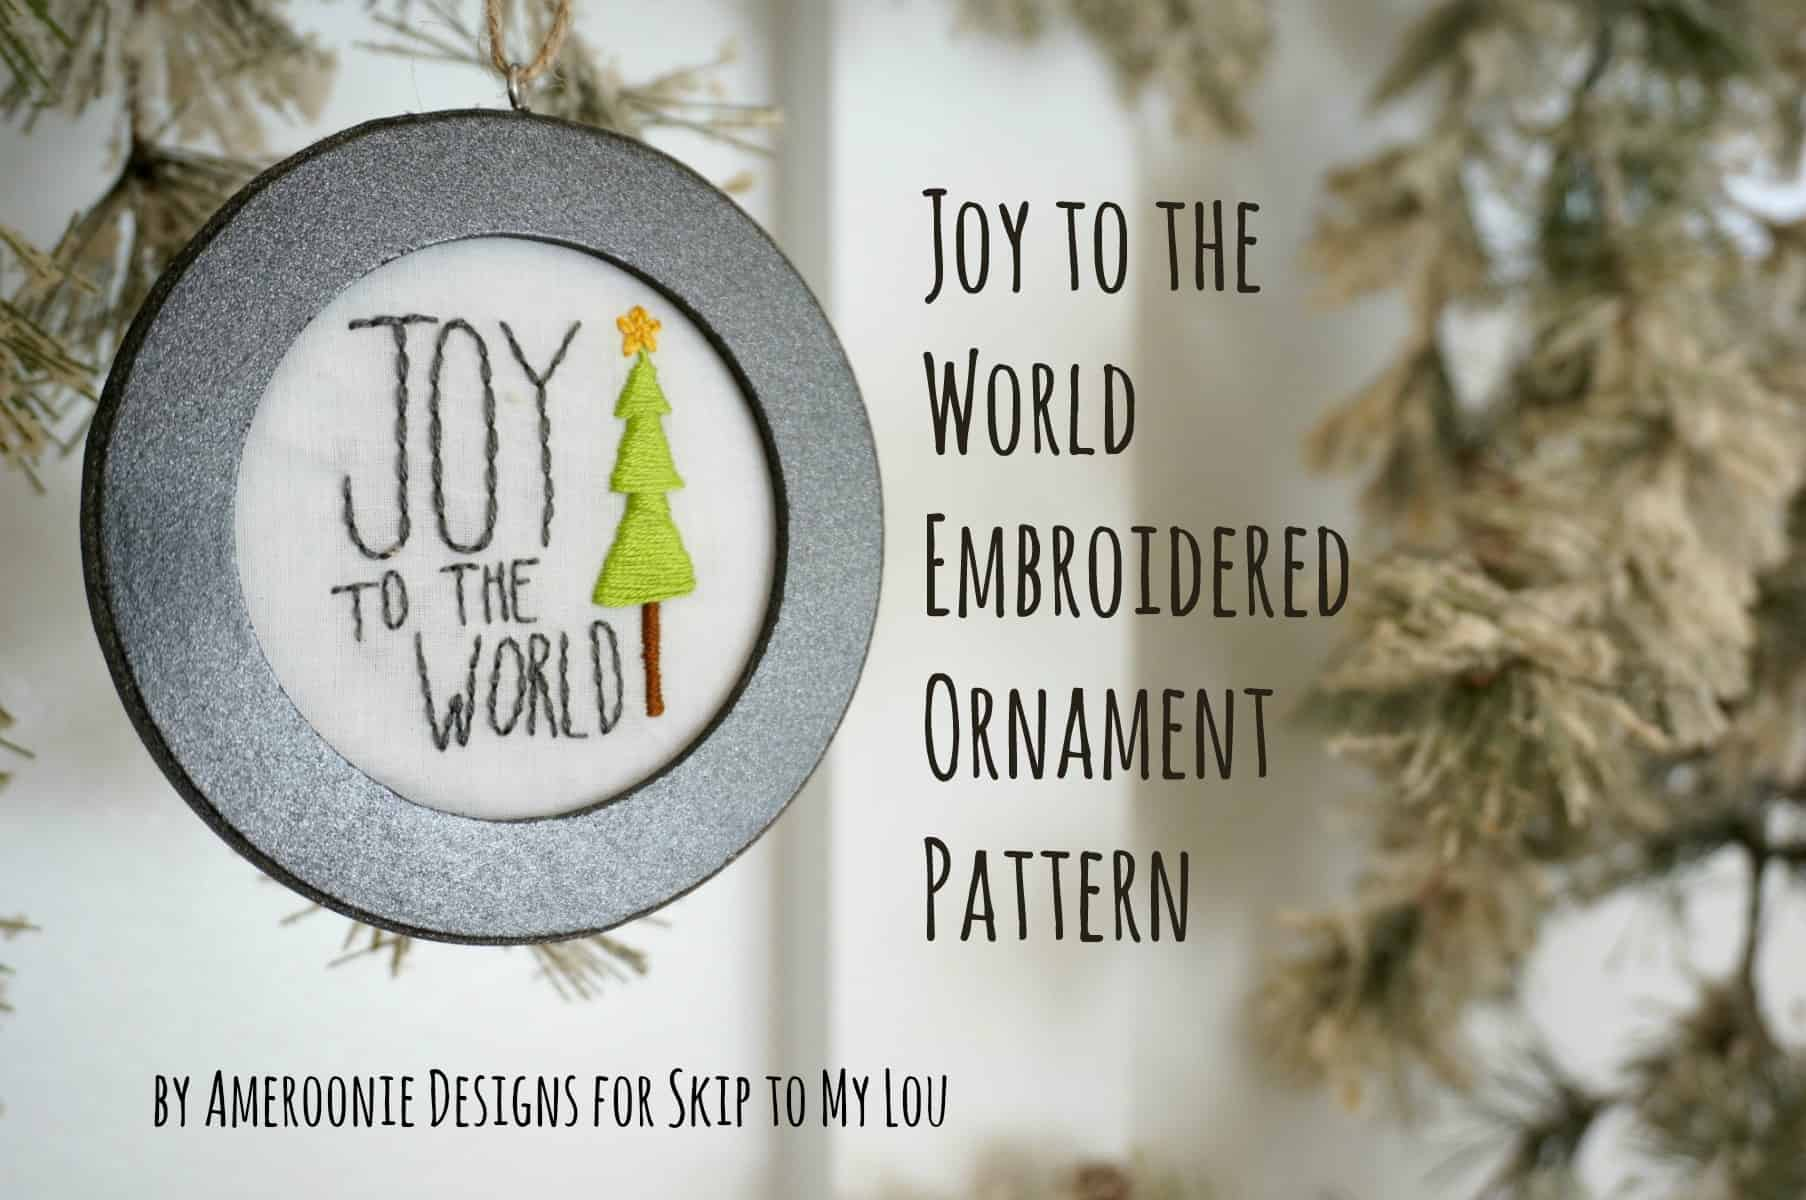 joy-to-the-world-pattern-title-pic